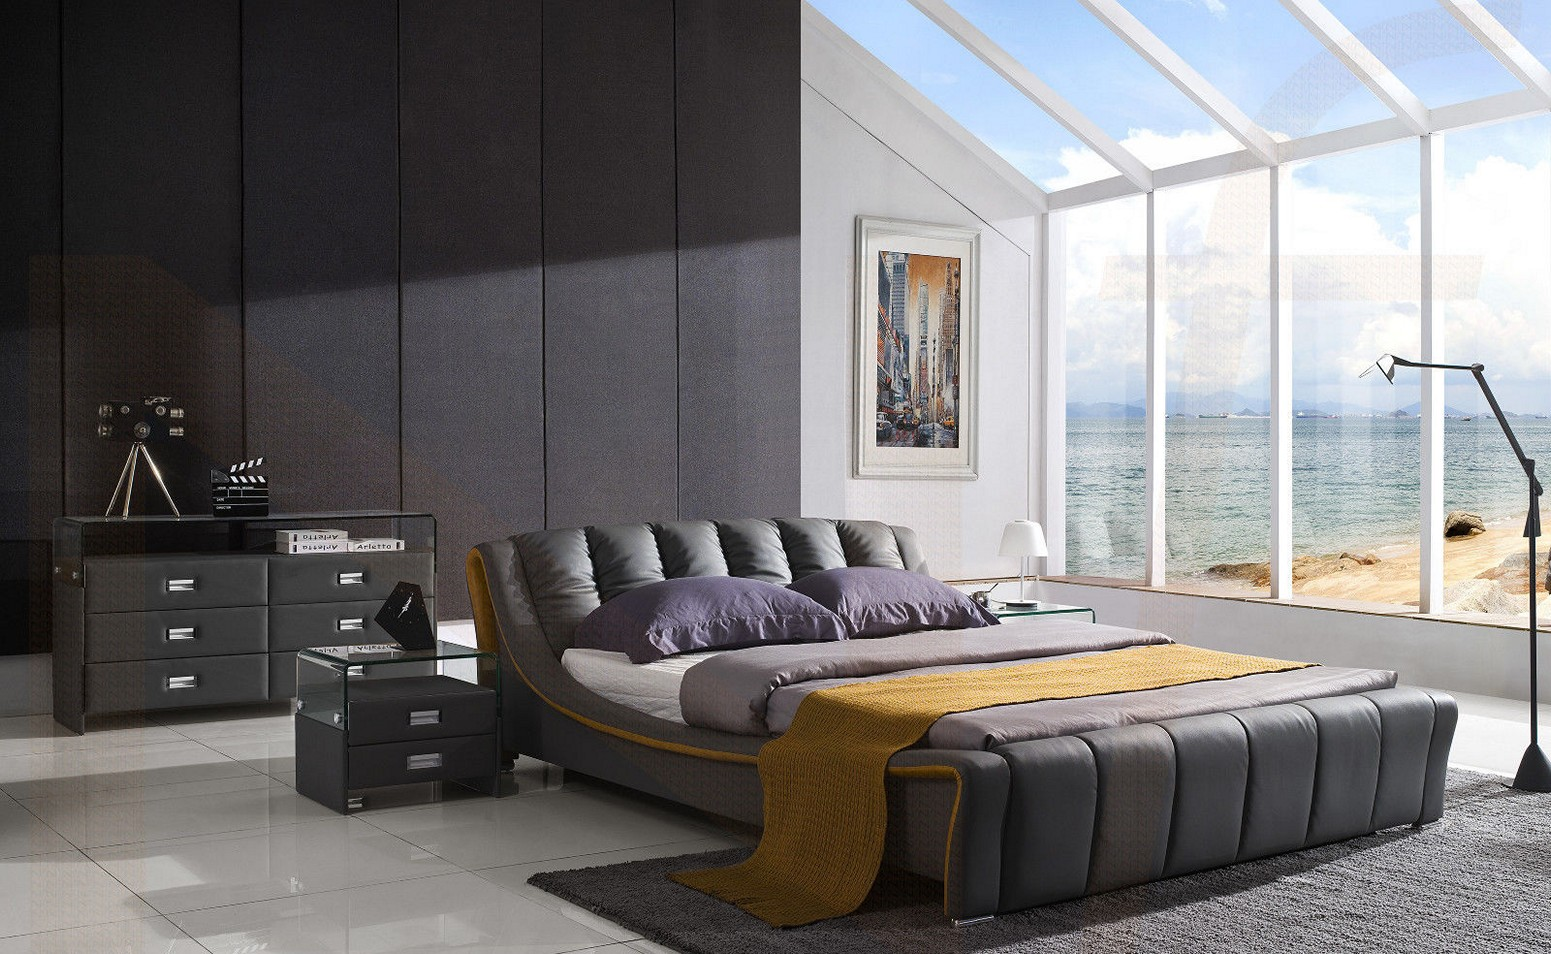 Amazing Of Cool Bedroom Ideas For Small Rooms Water Bedrooms Really Crazy Galaxy That Are And Fun Underwater Designs World S Coolest Ever Apppie Org